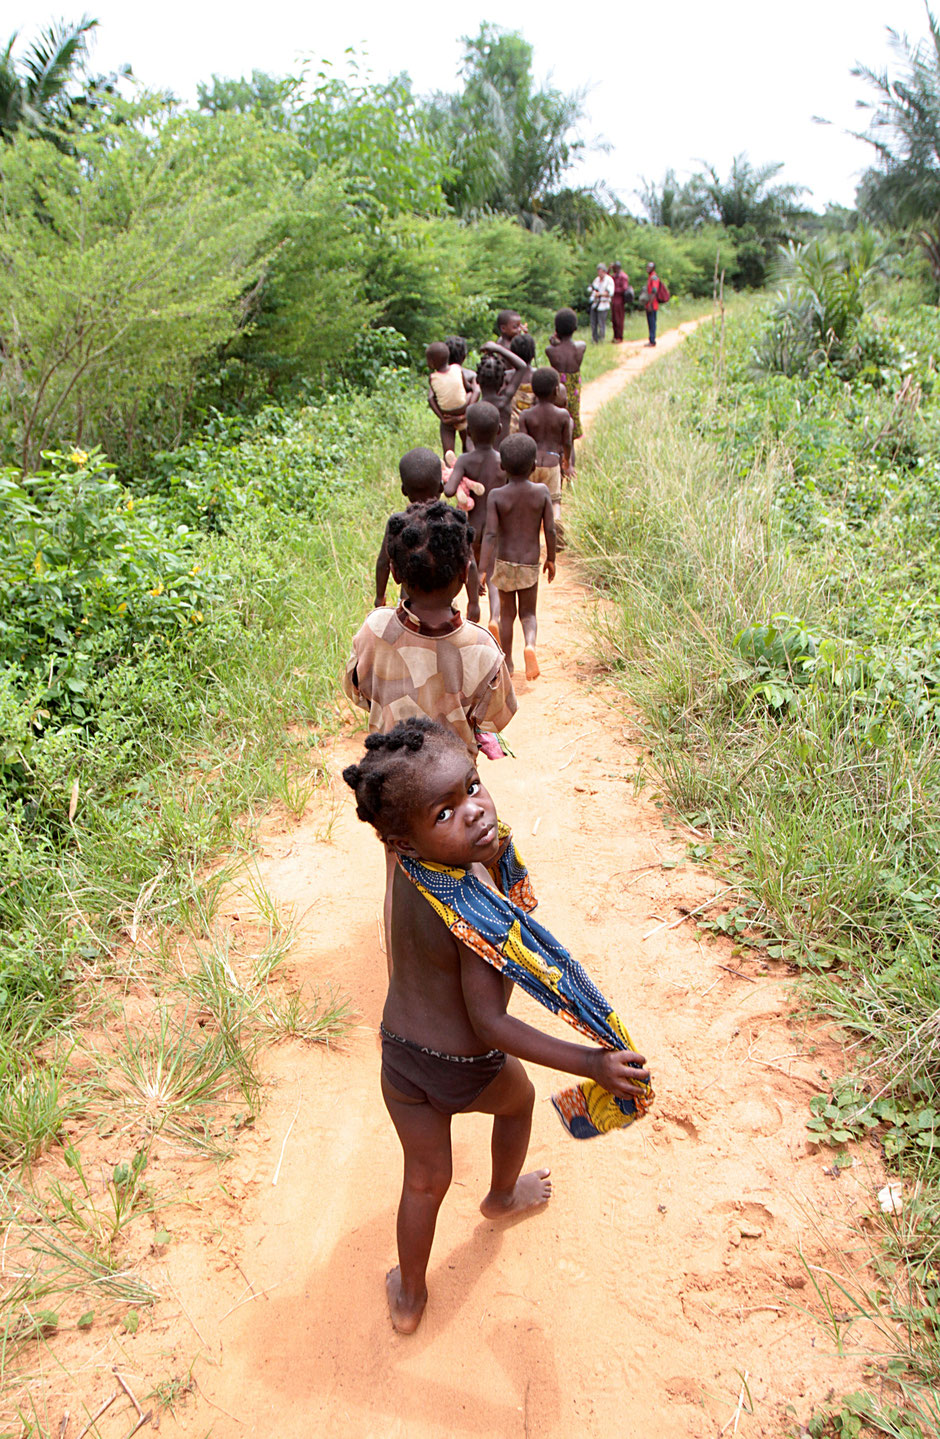 African children walking on a dirt road. Tori.